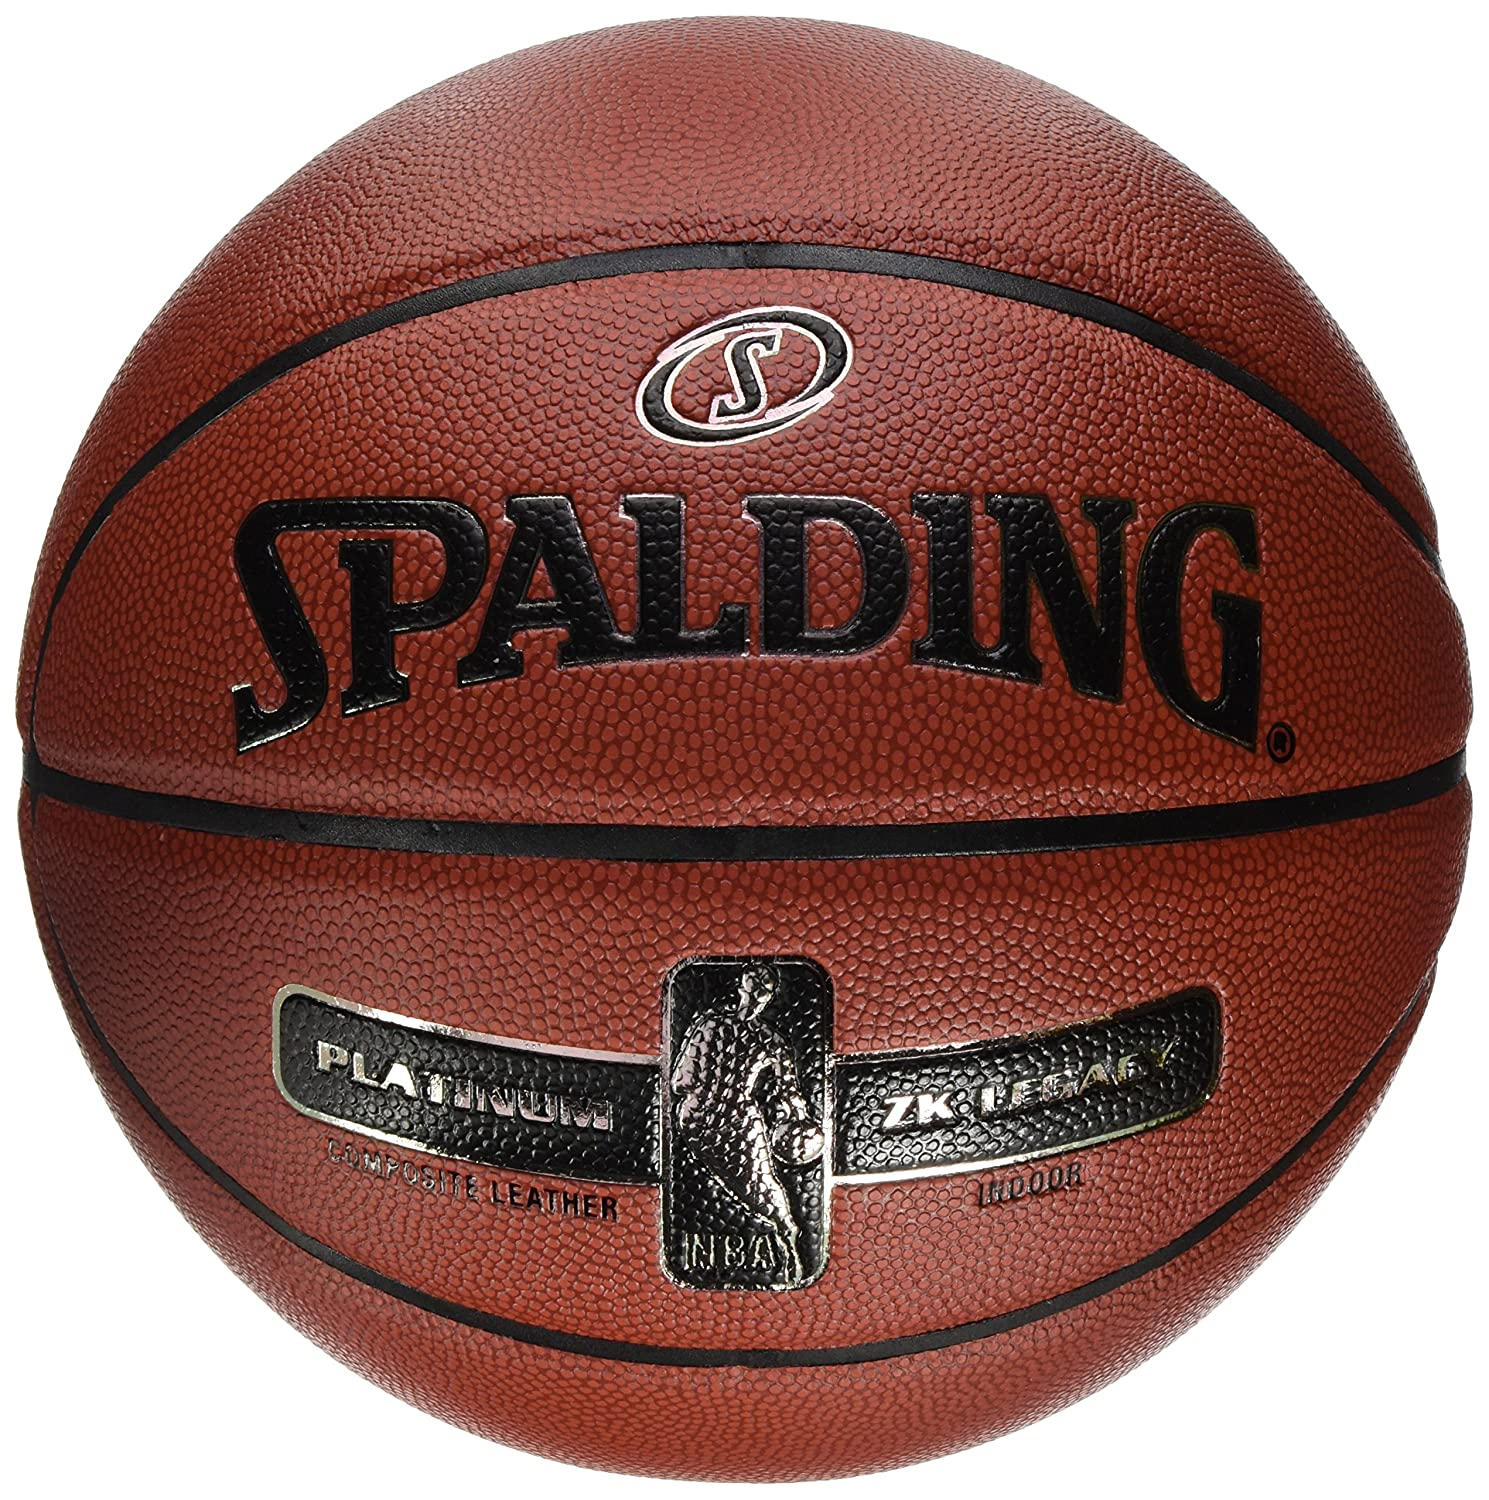 Spalding Basketball NBA Platinum ZK Legacy orange 7 SPAPO|#Spalding 3001514011117